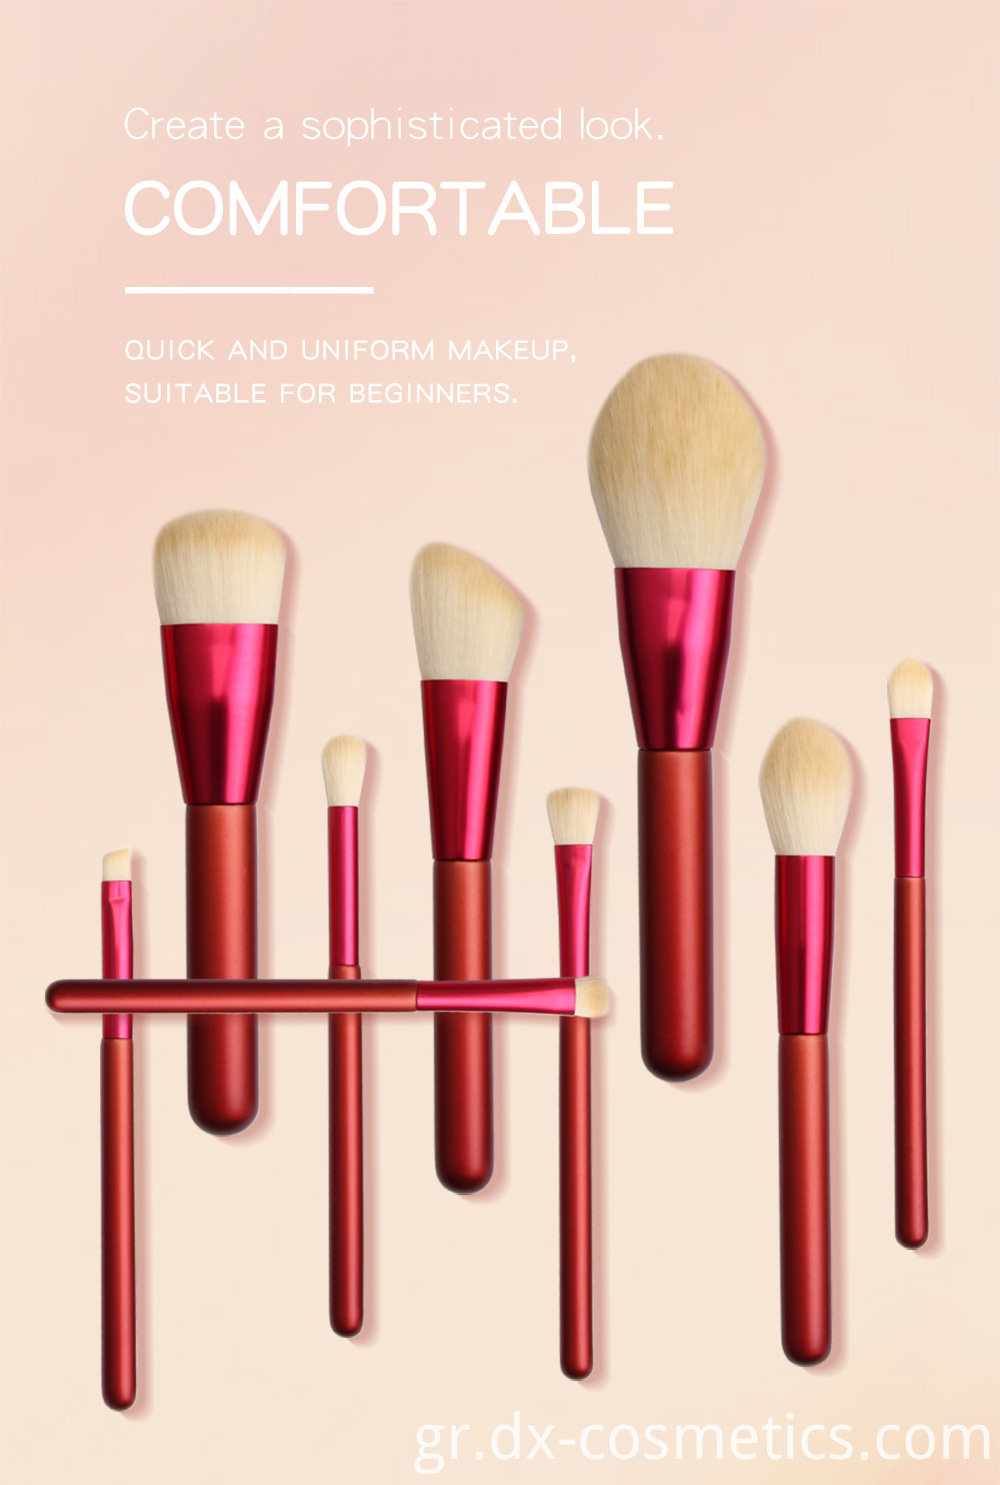 12 PCS Red Handle Makeup Brushes Set 2